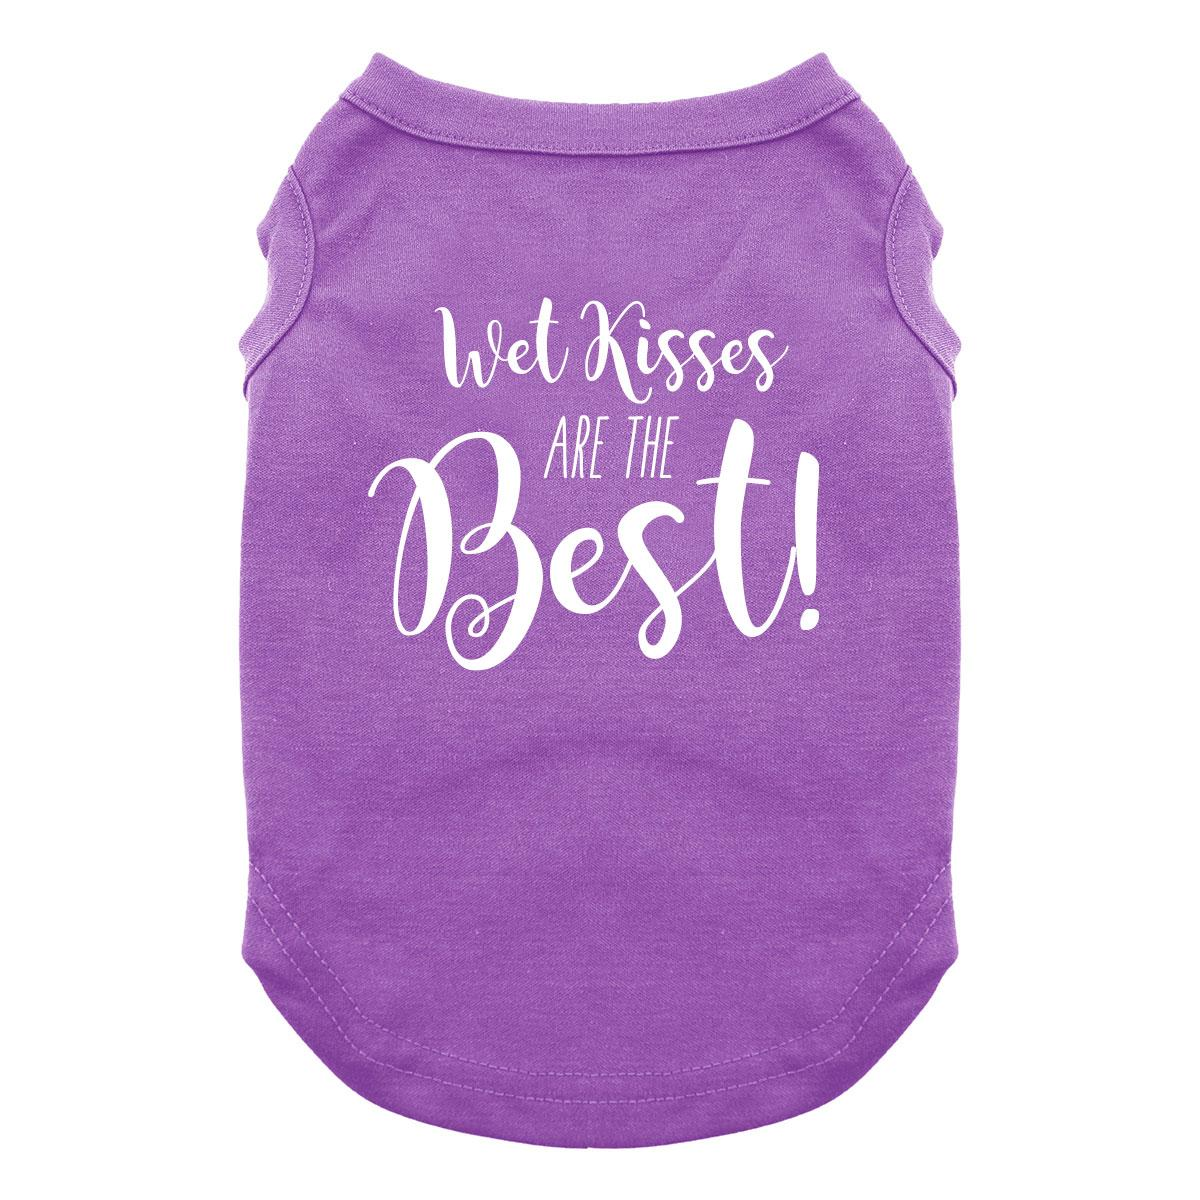 Wet Kisses are the Best Dog Shirt - Purple